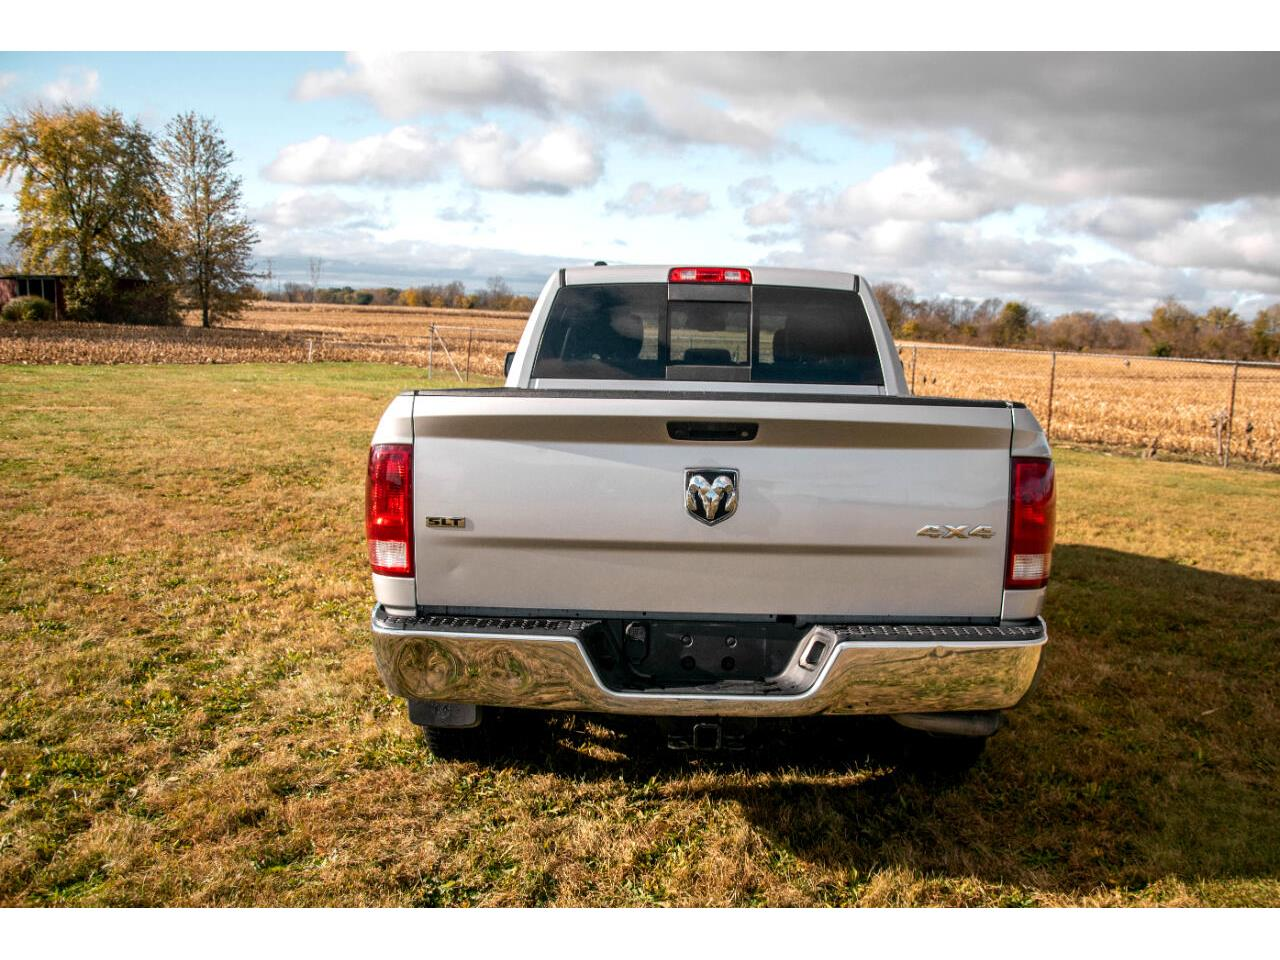 2016 Dodge Ram 1500 (CC-1414646) for sale in Cicero, Indiana